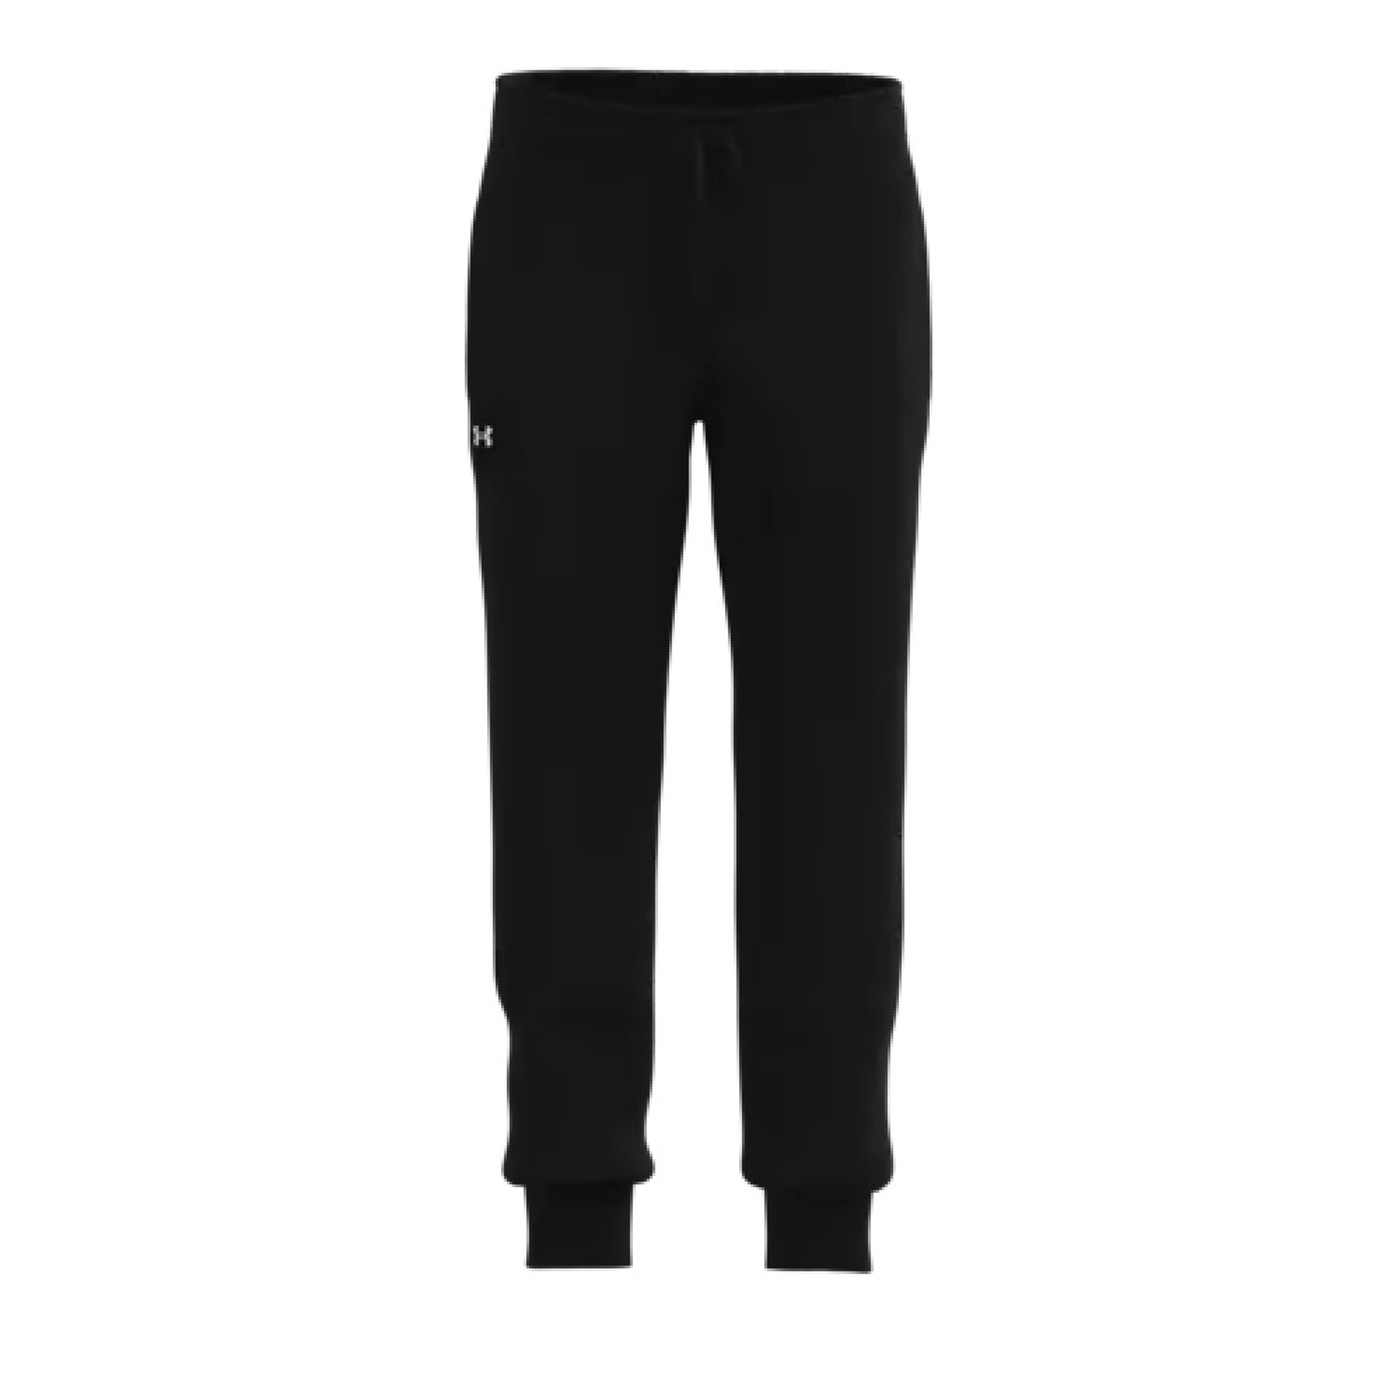 UNDER ARMOUR UA RIVAL FLEECE JOGGERS - Kinder